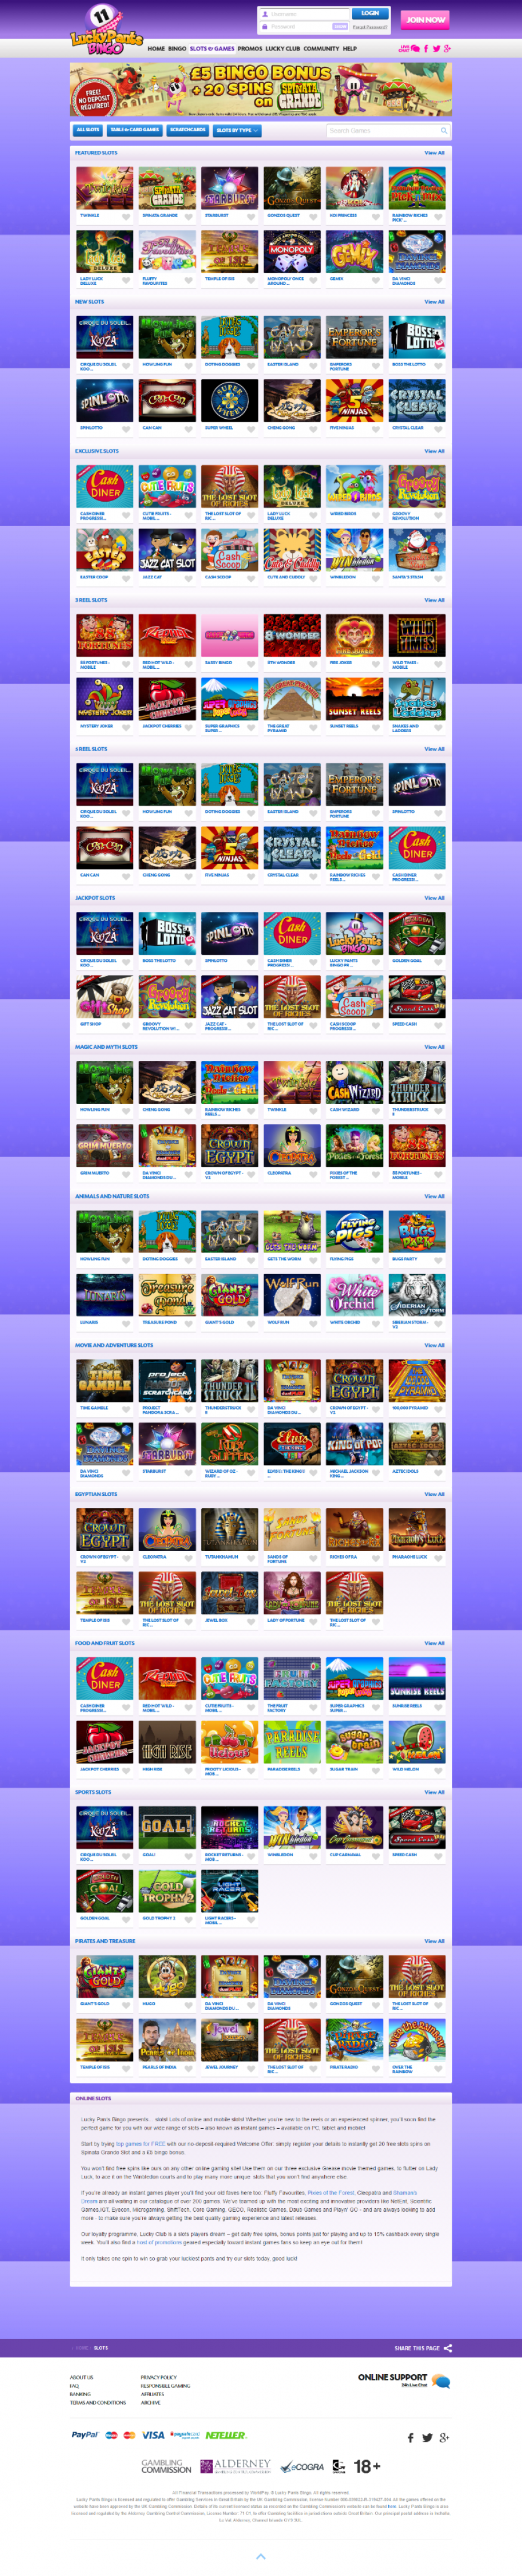 Lucky Pants Bingo Casino  screenshot